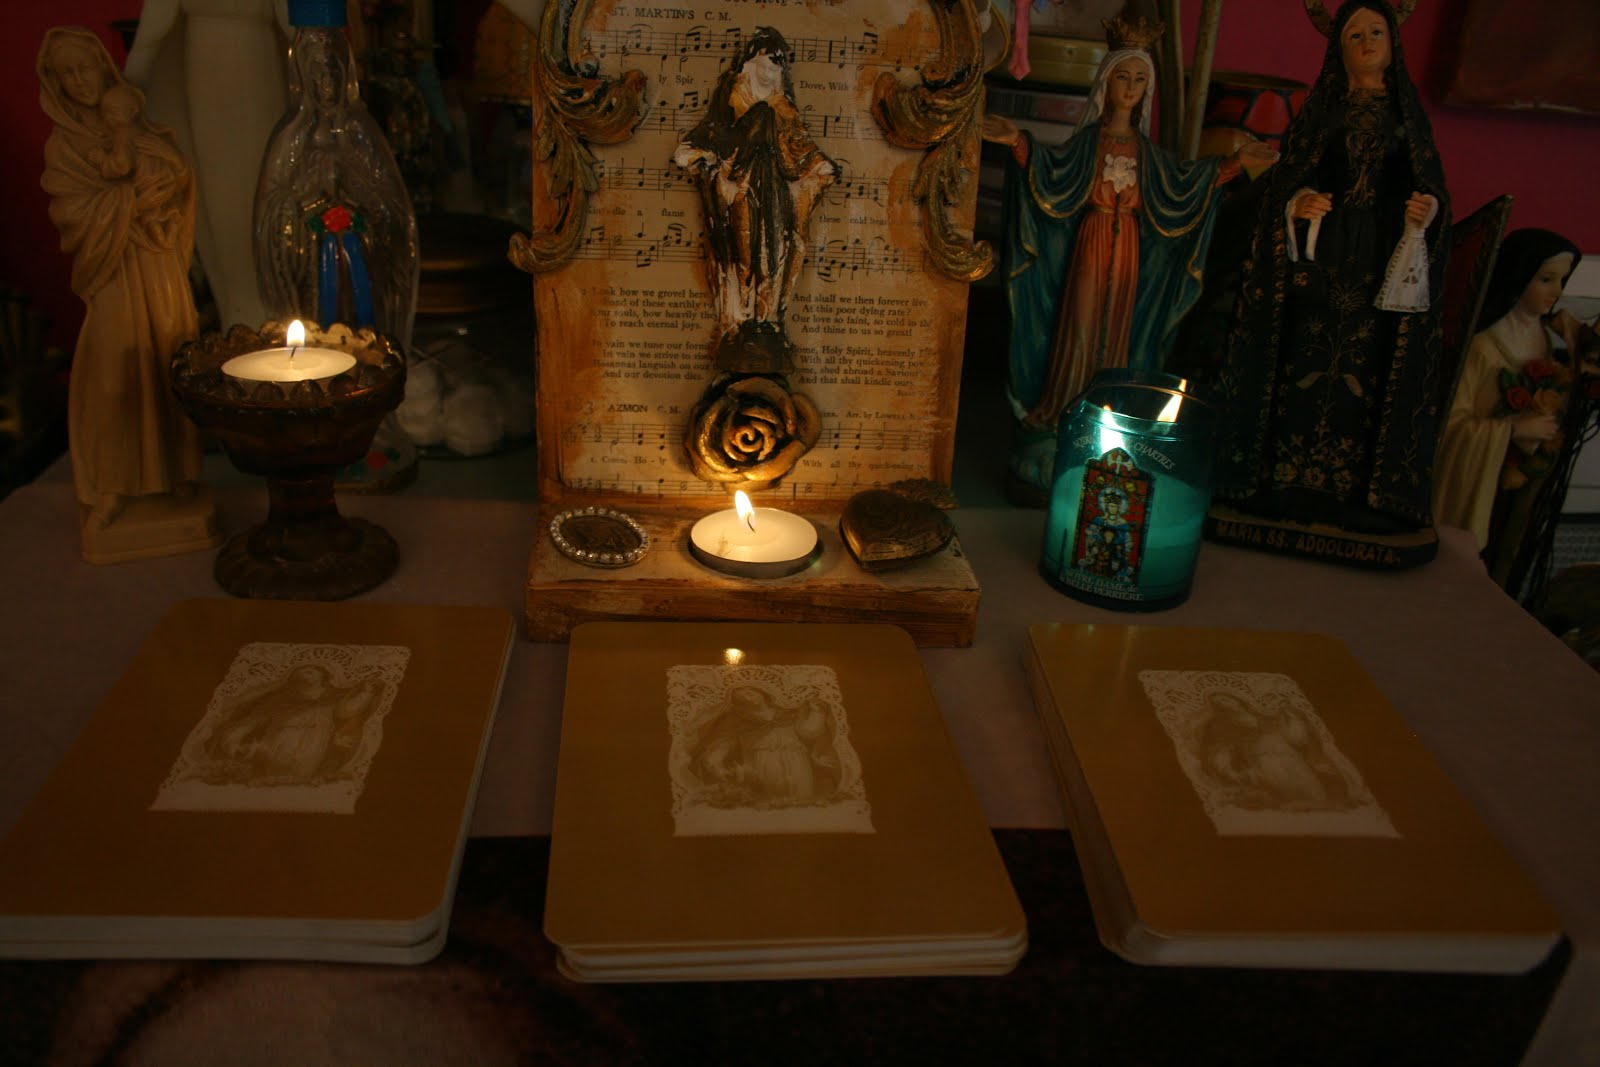 Click on the image to find various spreads and layouts for reading with The Mysteries of Mary Tarot